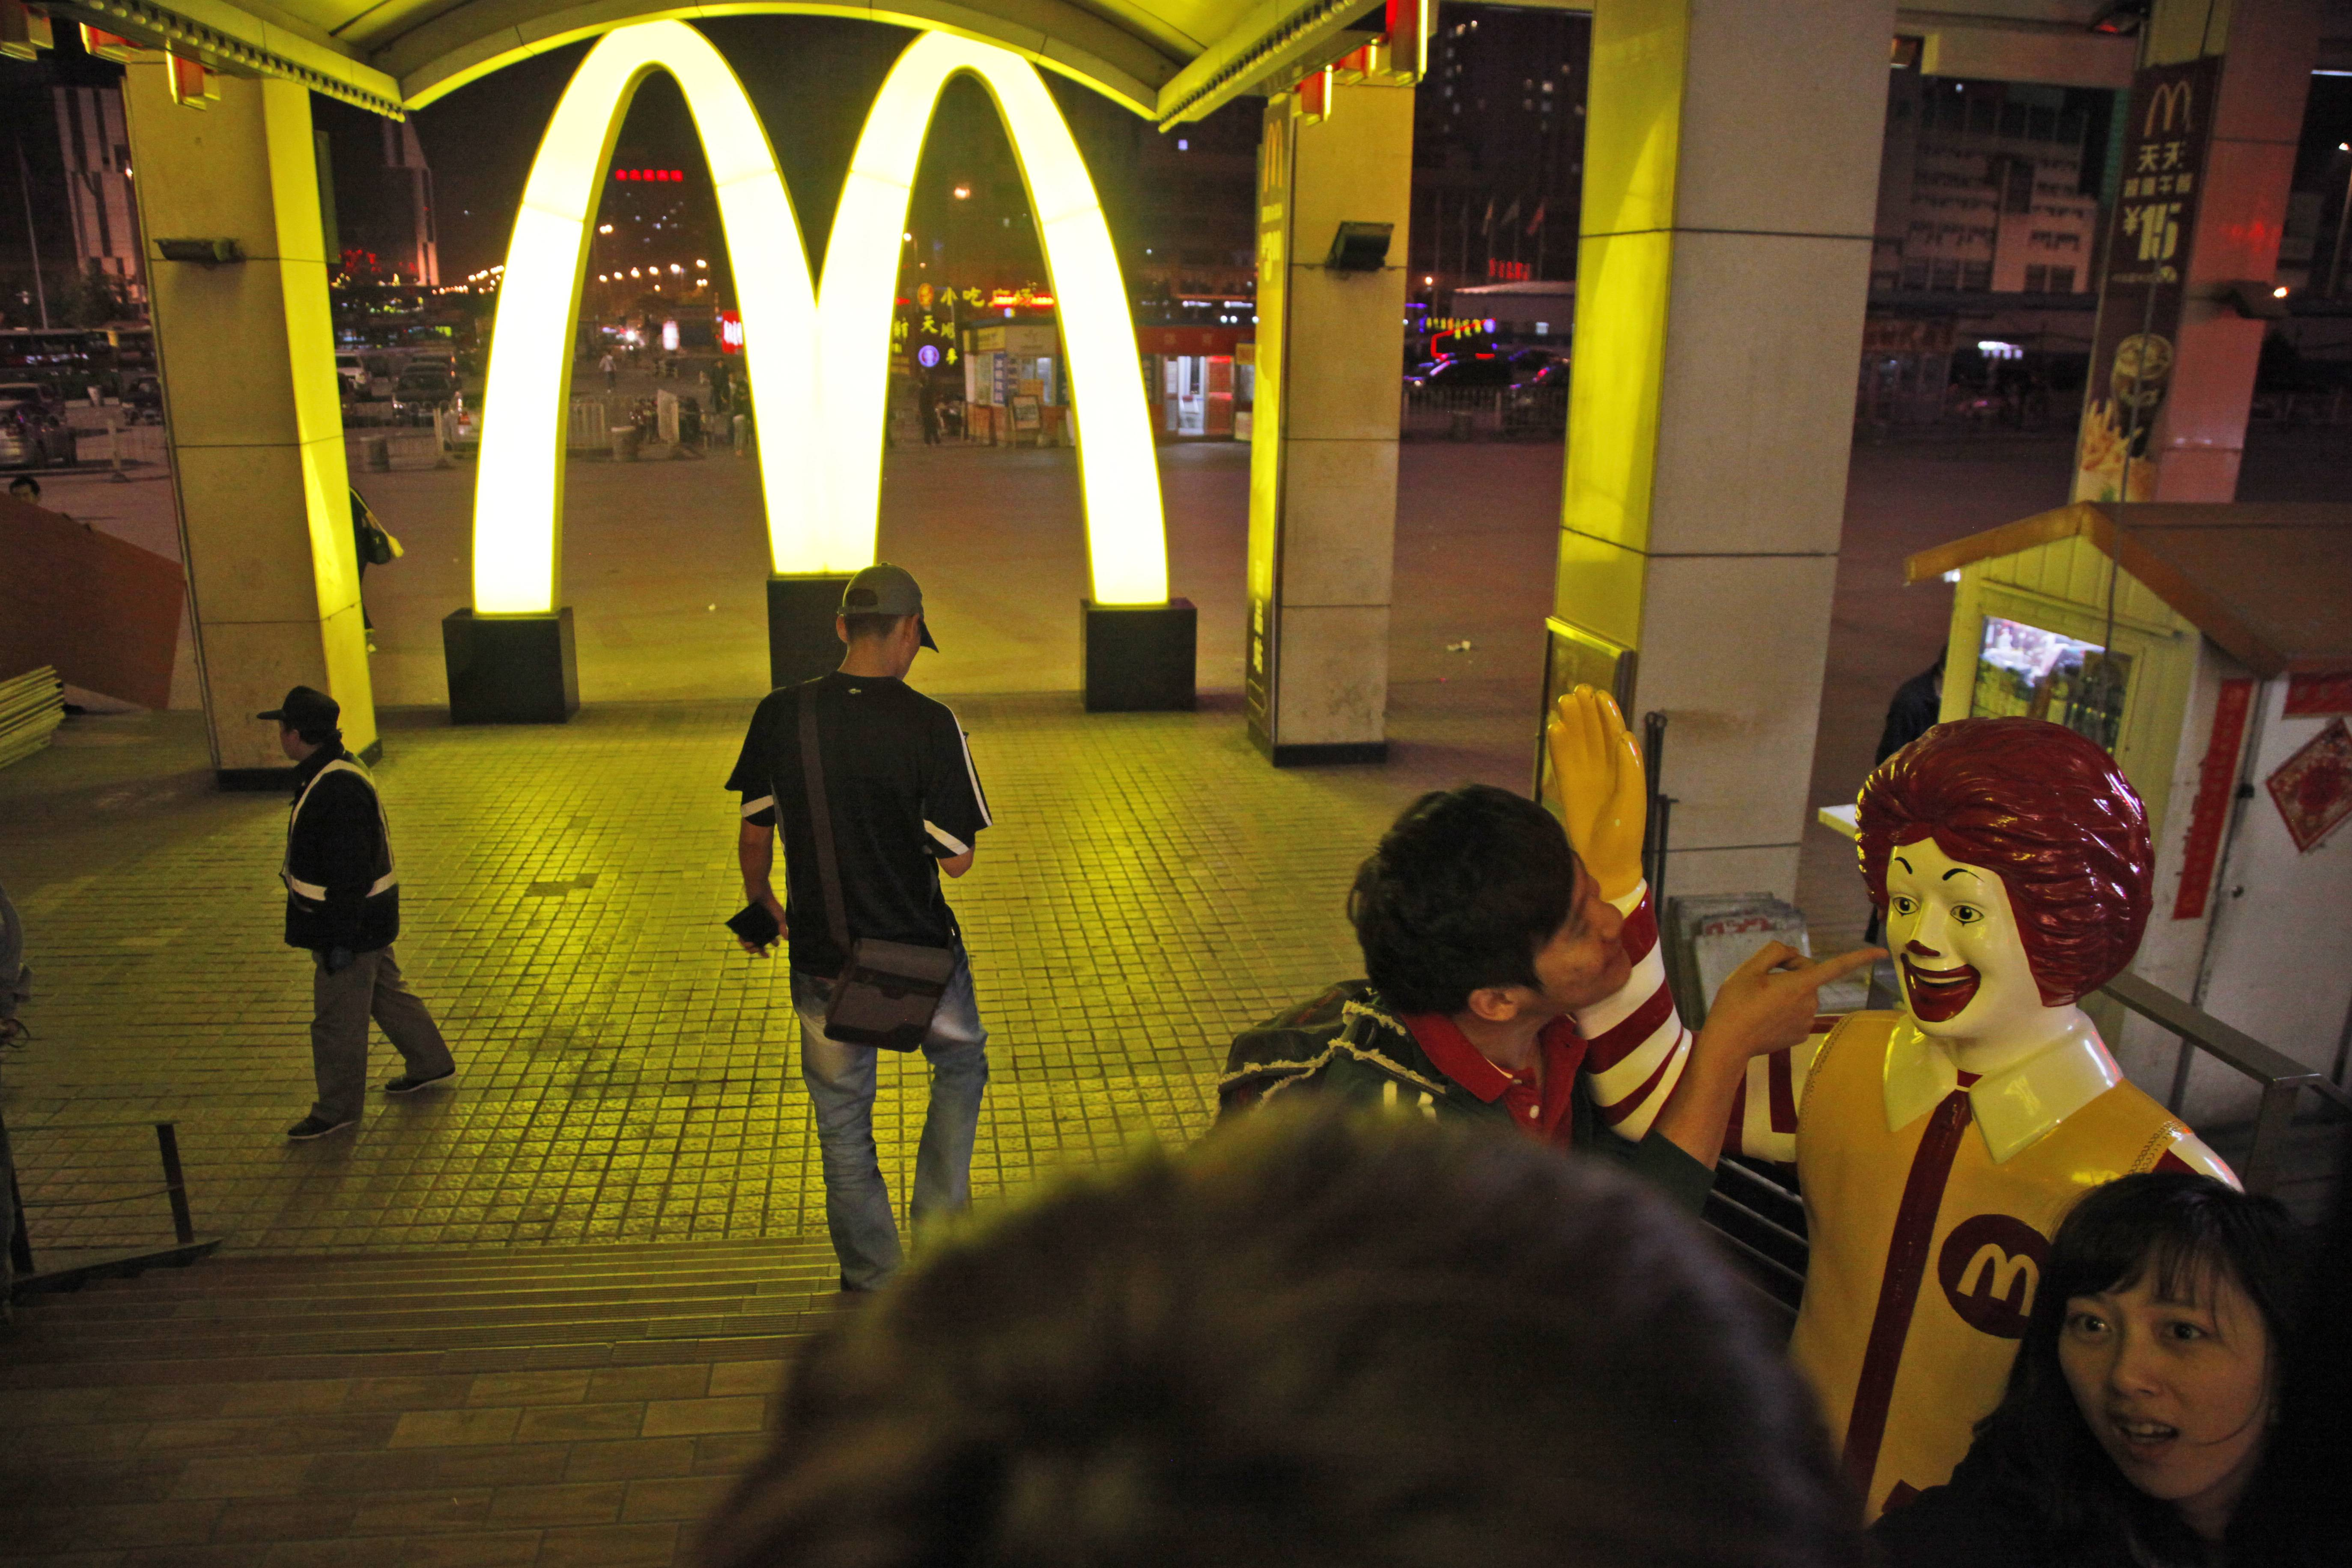 If you want a burger from McDonald's Corp. in China's biggest cities, you'll have to get one made from fish.Beef, pork and chicken items were eliminated at the U.S.- based chain, after supplier OSI Group LLC recalled all products made at its Shanghai unit yesterday. Aurora,-based OSI, which supplies customers including McDonald's and KFC owner Yum! Brands Inc., is accused of repackaging old meat as new.